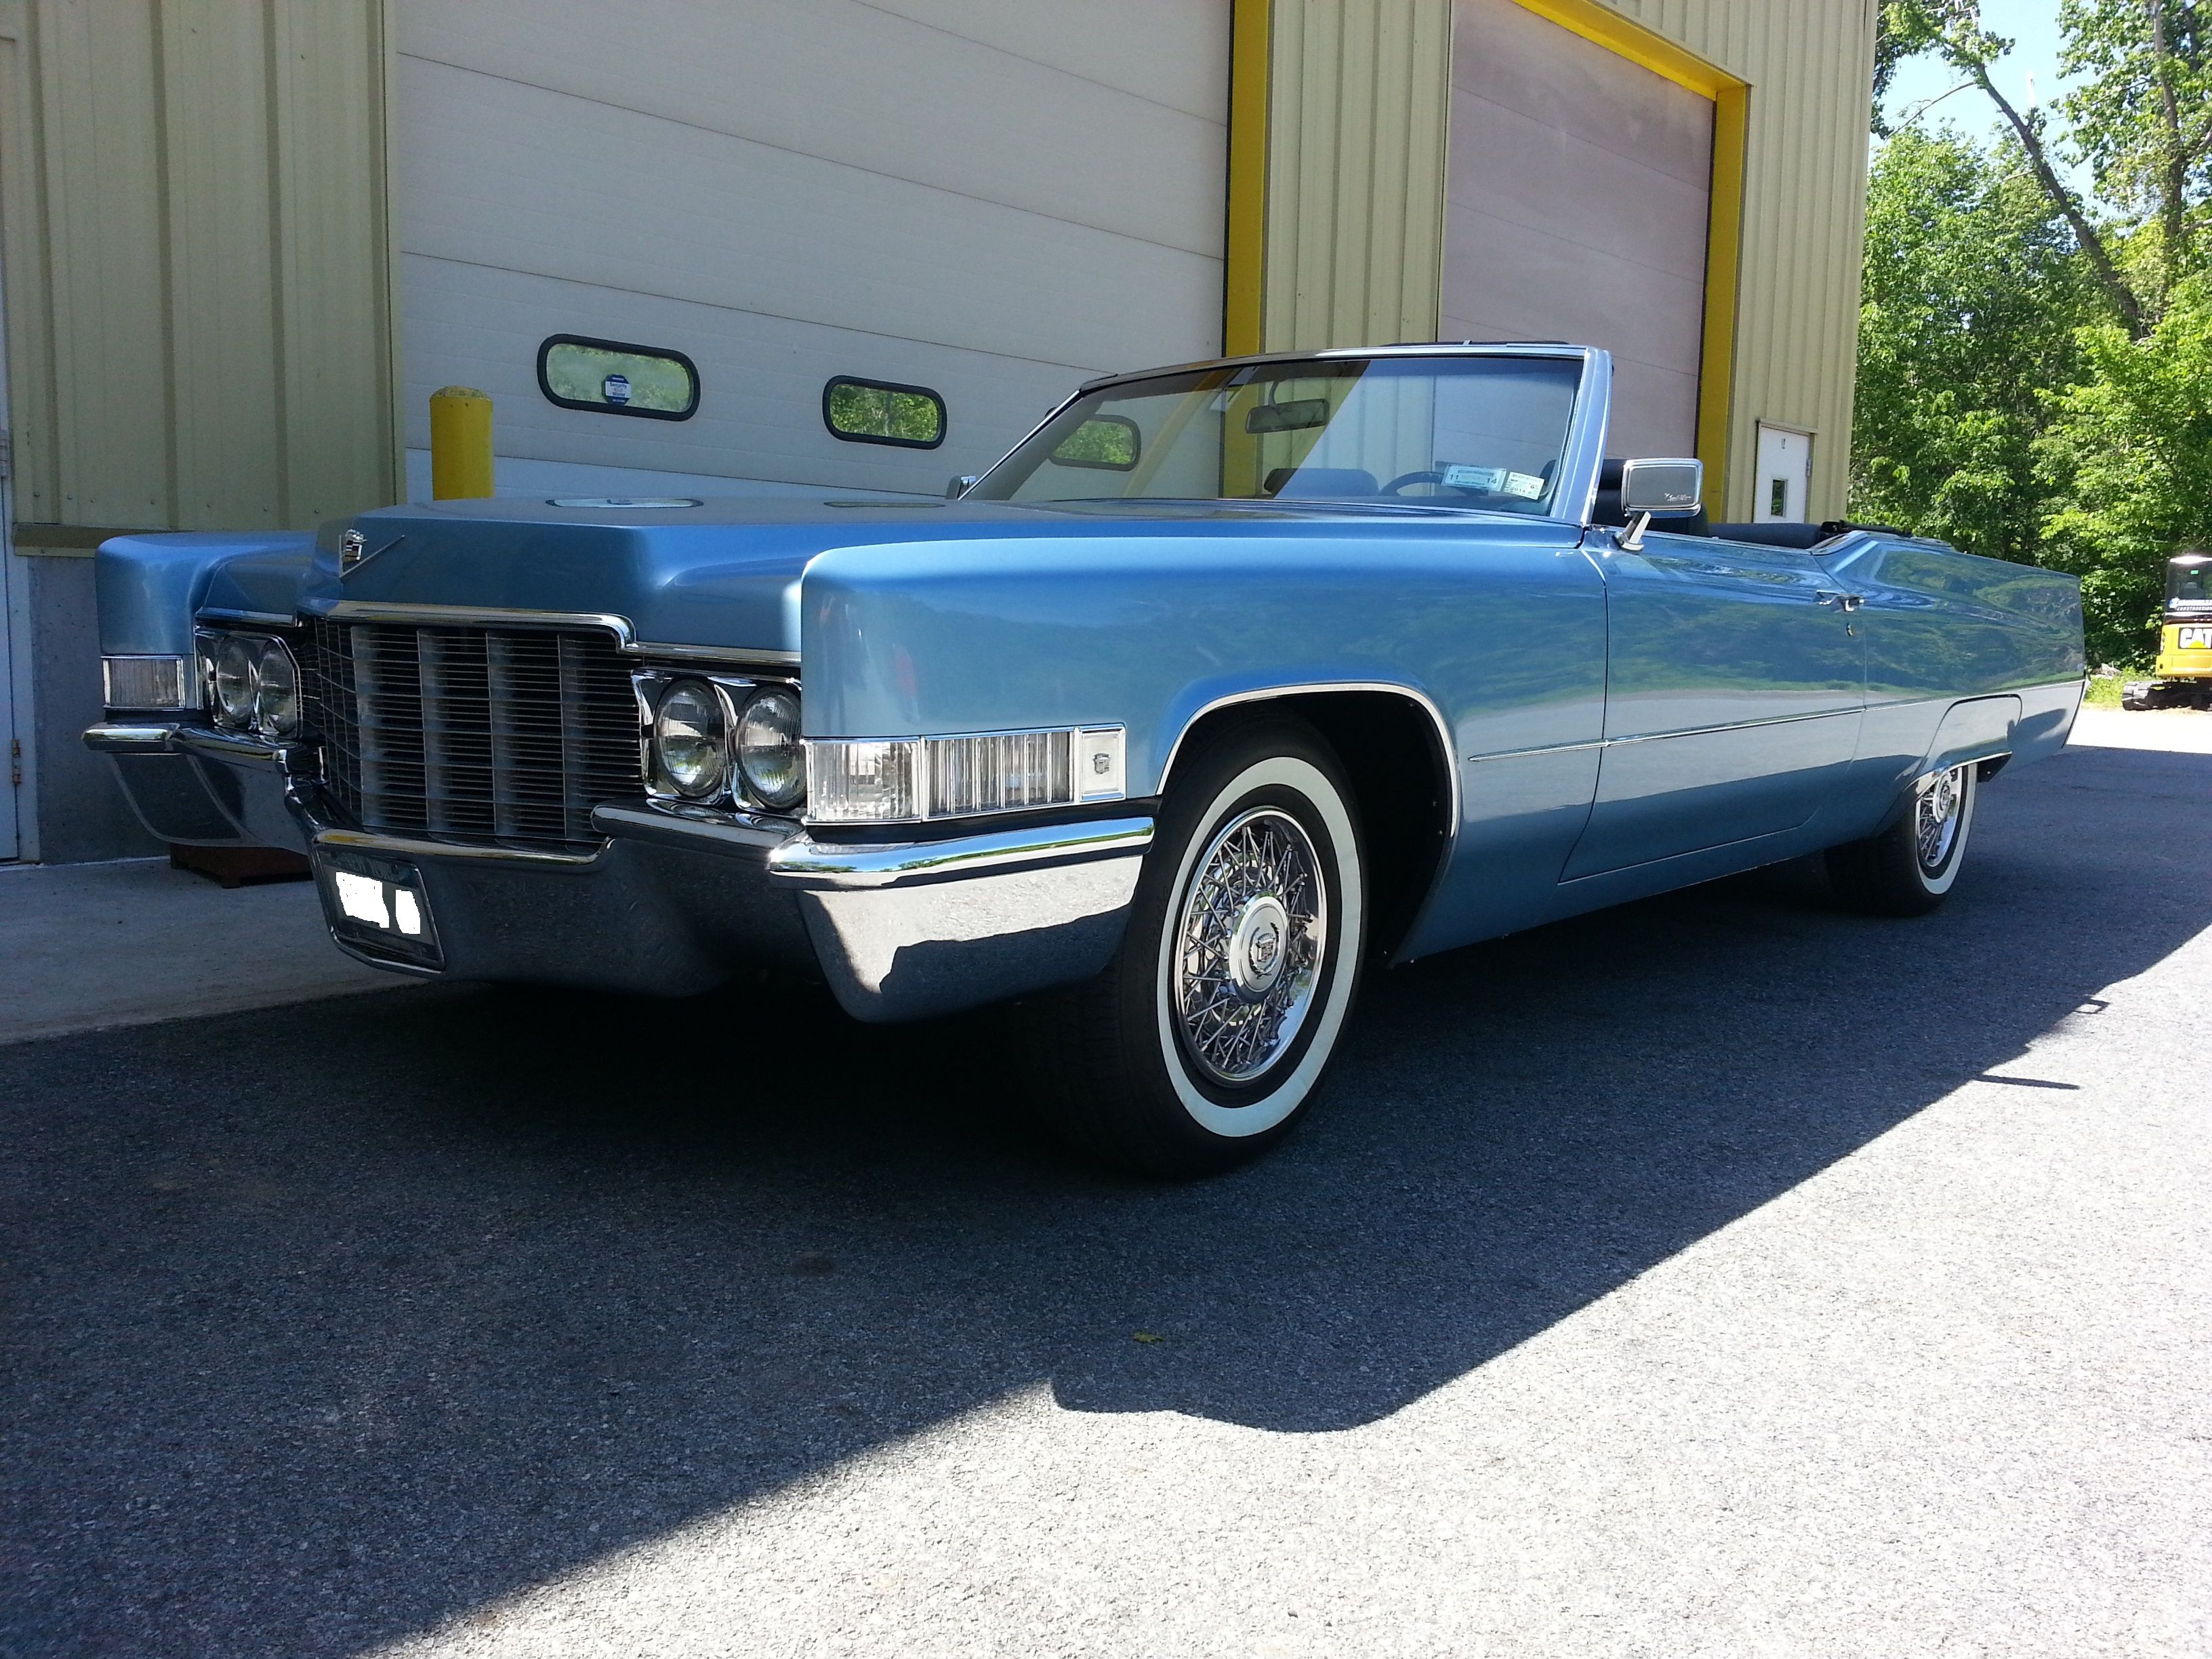 1969 cadillac deville convertible in for some interior restoration installed nos steering wheel restored